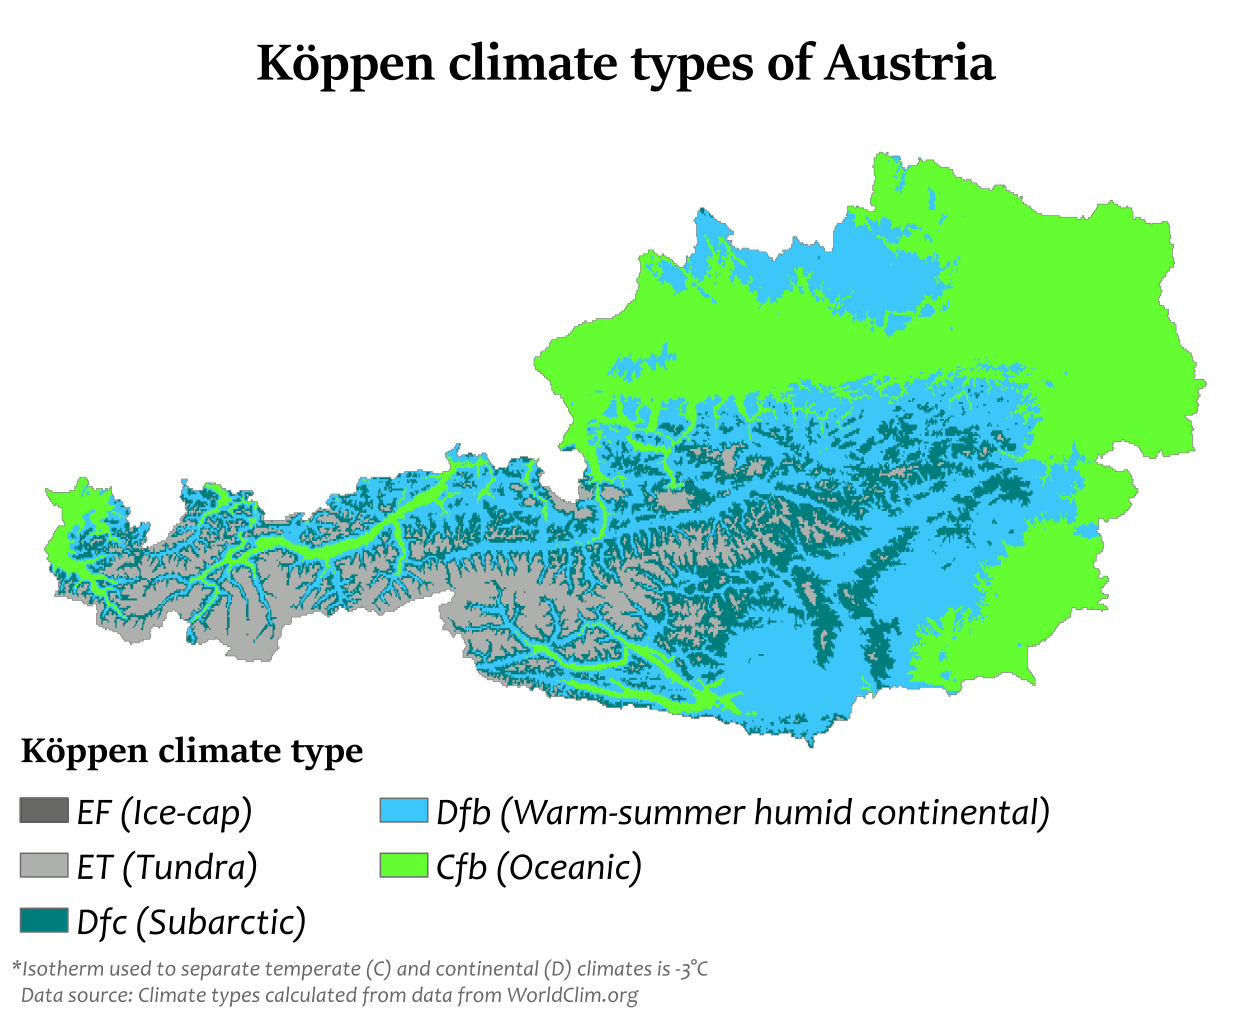 Köppen climate types of Austria | maps | Map, Austria, Type on koppen classification map, doe climate zone map united states, pull down classroom map united states, epa region map united states, average wind speed map united states, climate southeast united states, seven climate zones united states, us zip codes map united states, temperate deciduous forest in united states, humid continental climate united states, climate of united states, us map continental united states, nuclear power plant map united states, humidity map united states, climate change map united states, subtropical map united states, average january temperature map united states, temperate climate in united states, u.s. climate map united states, vegetation map of the united states,